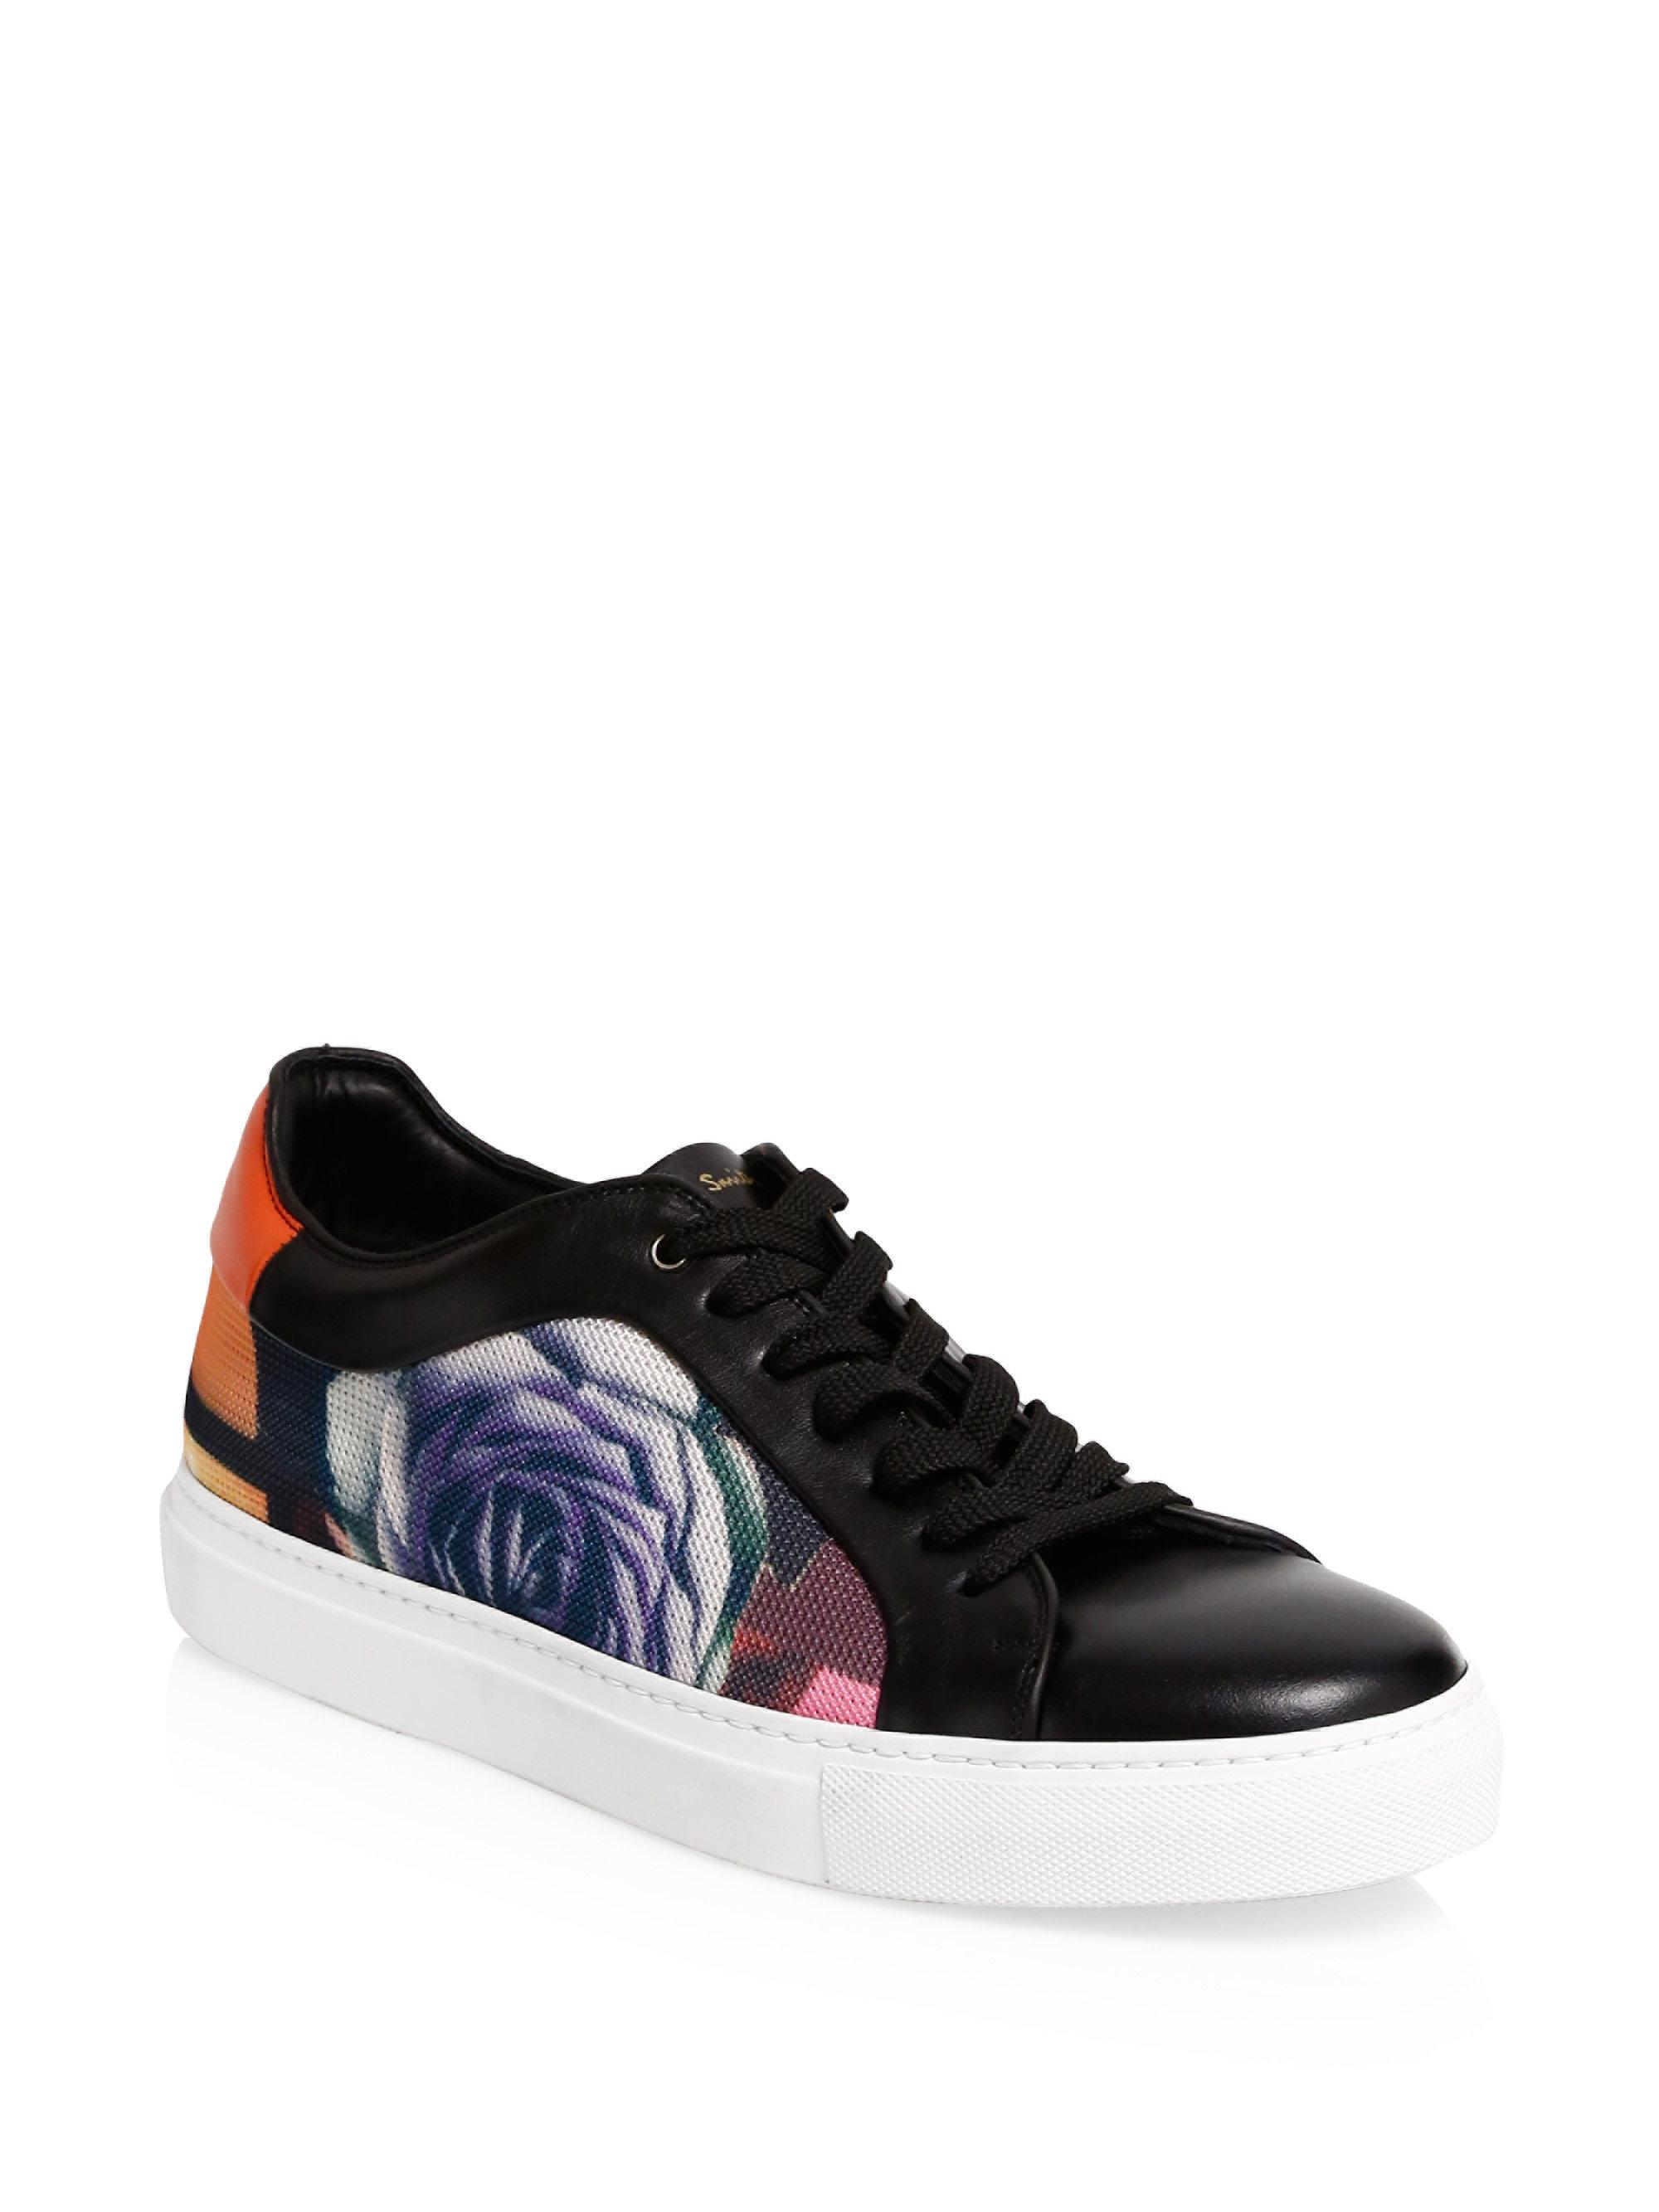 Paul SmithBasso Rose Leather Sneakers